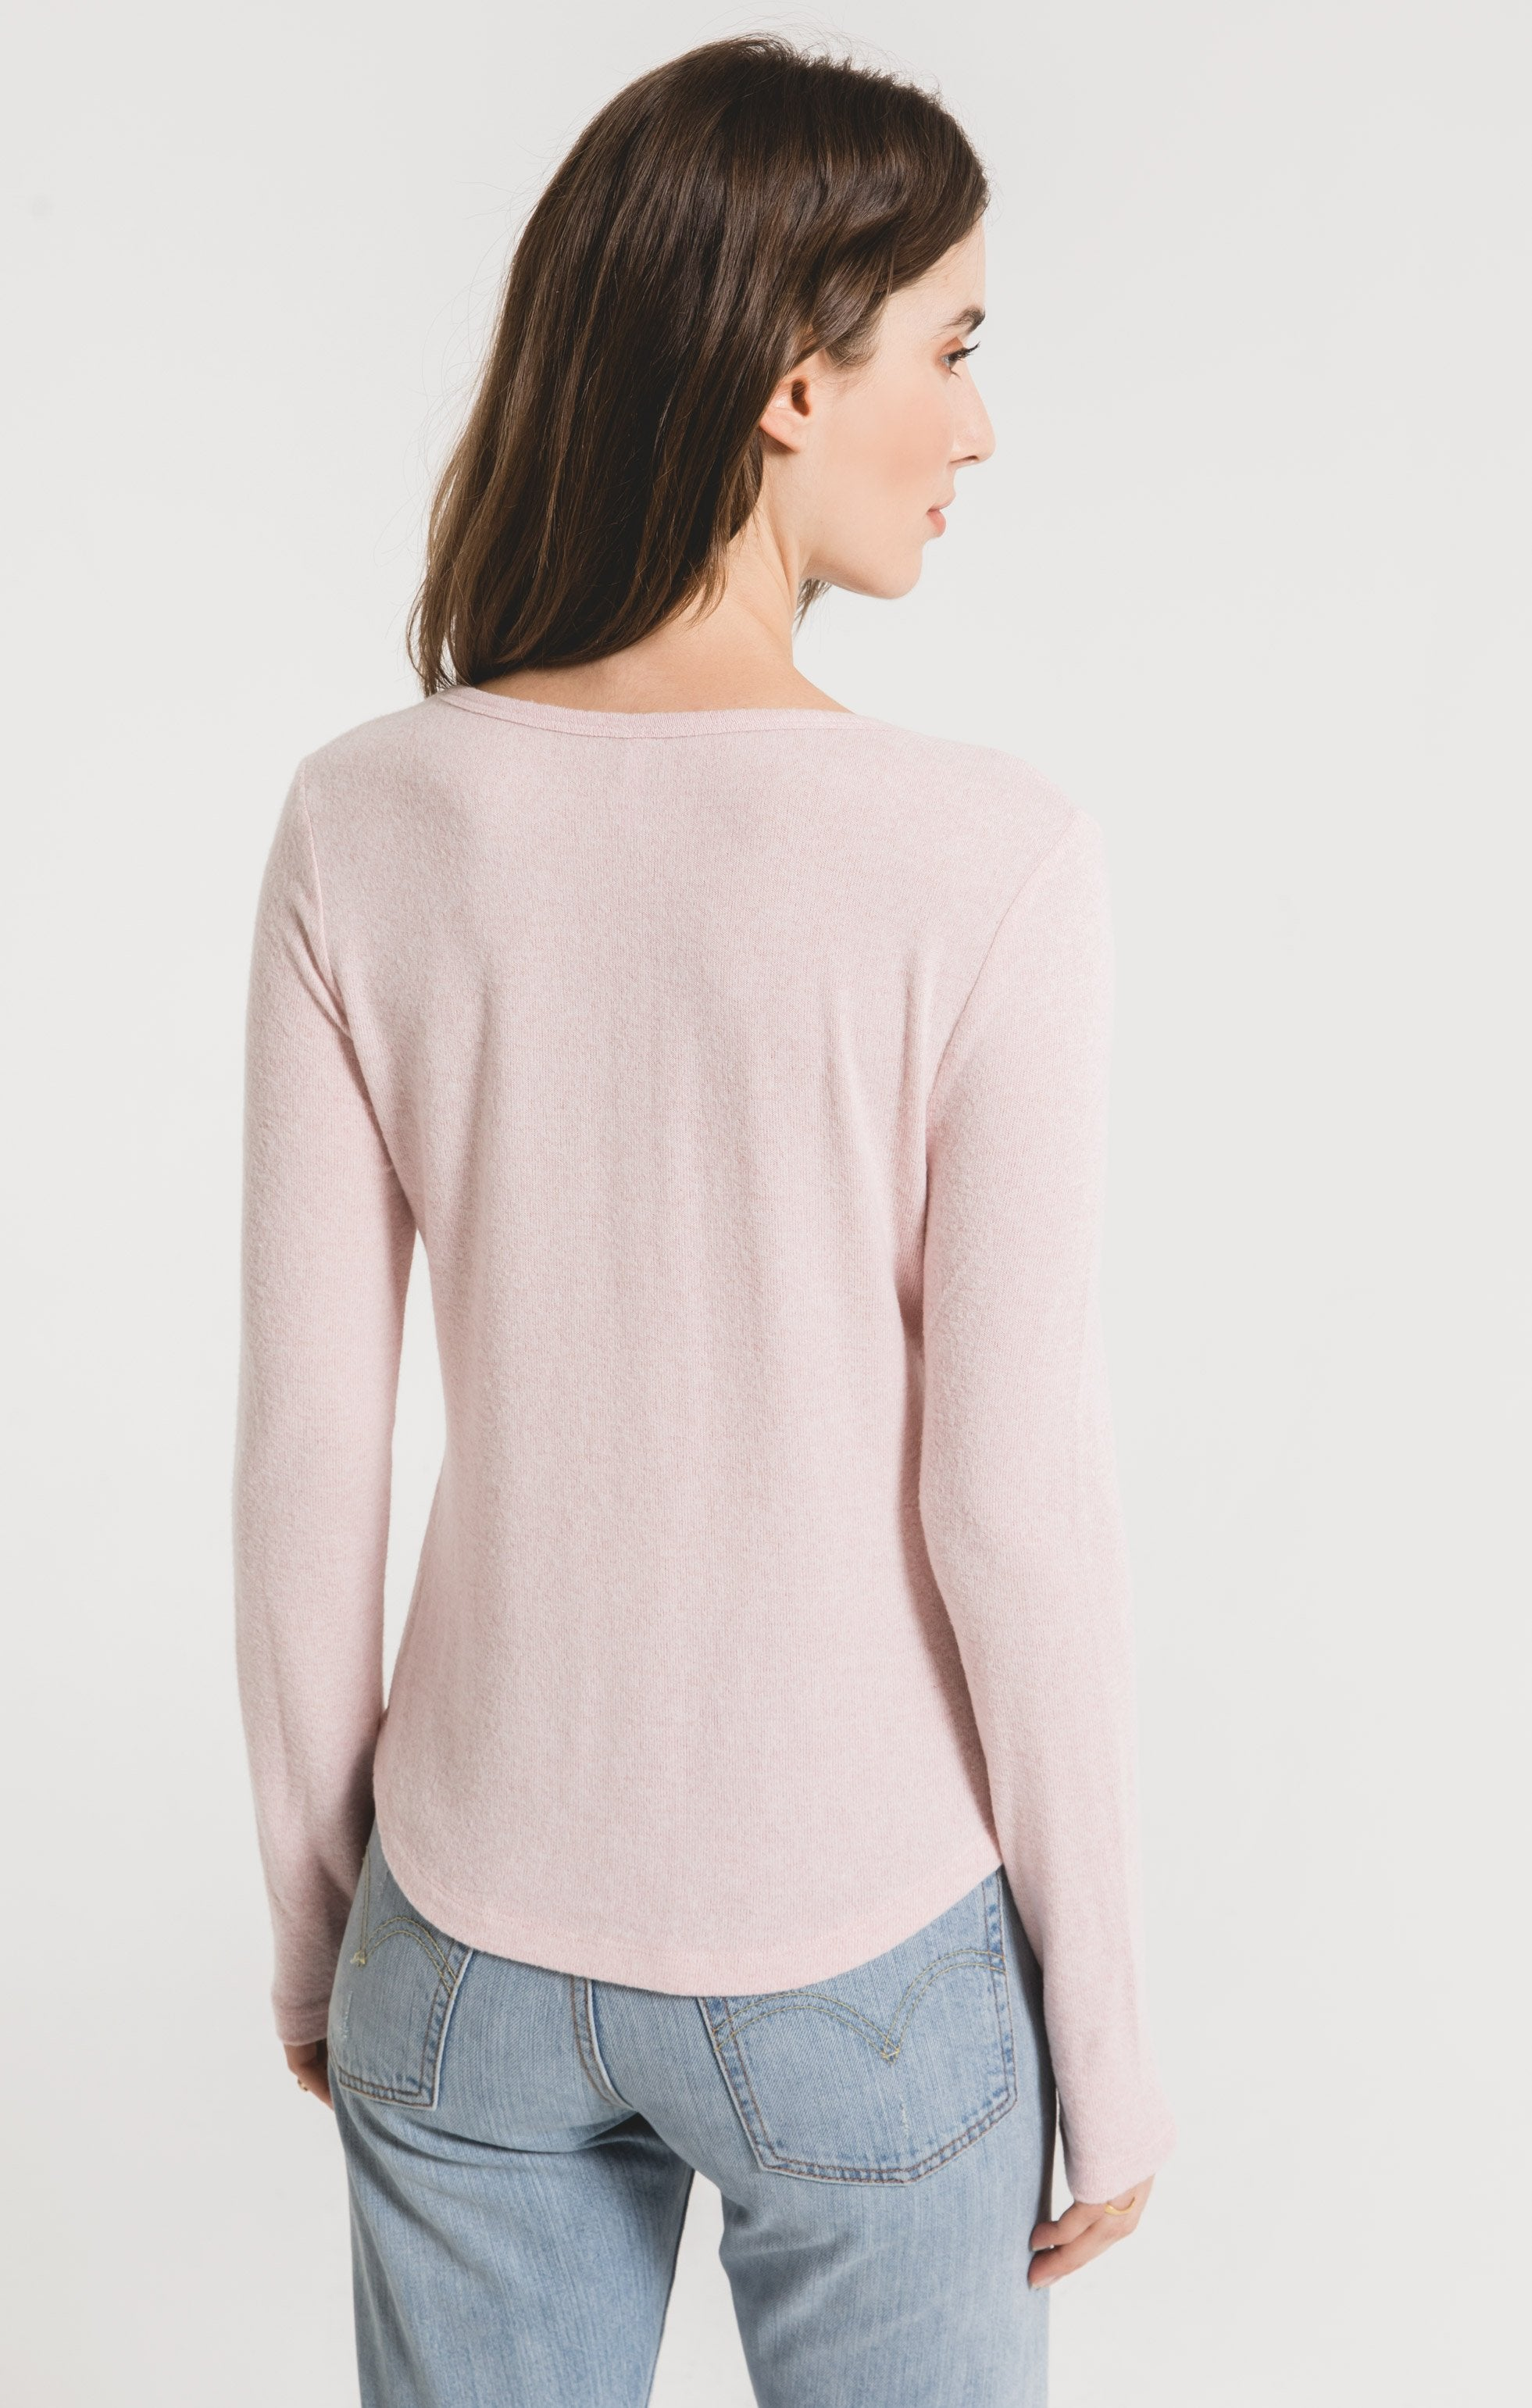 Tops Marled Long Sleeve Fitted Top Pale Blush/Ivory